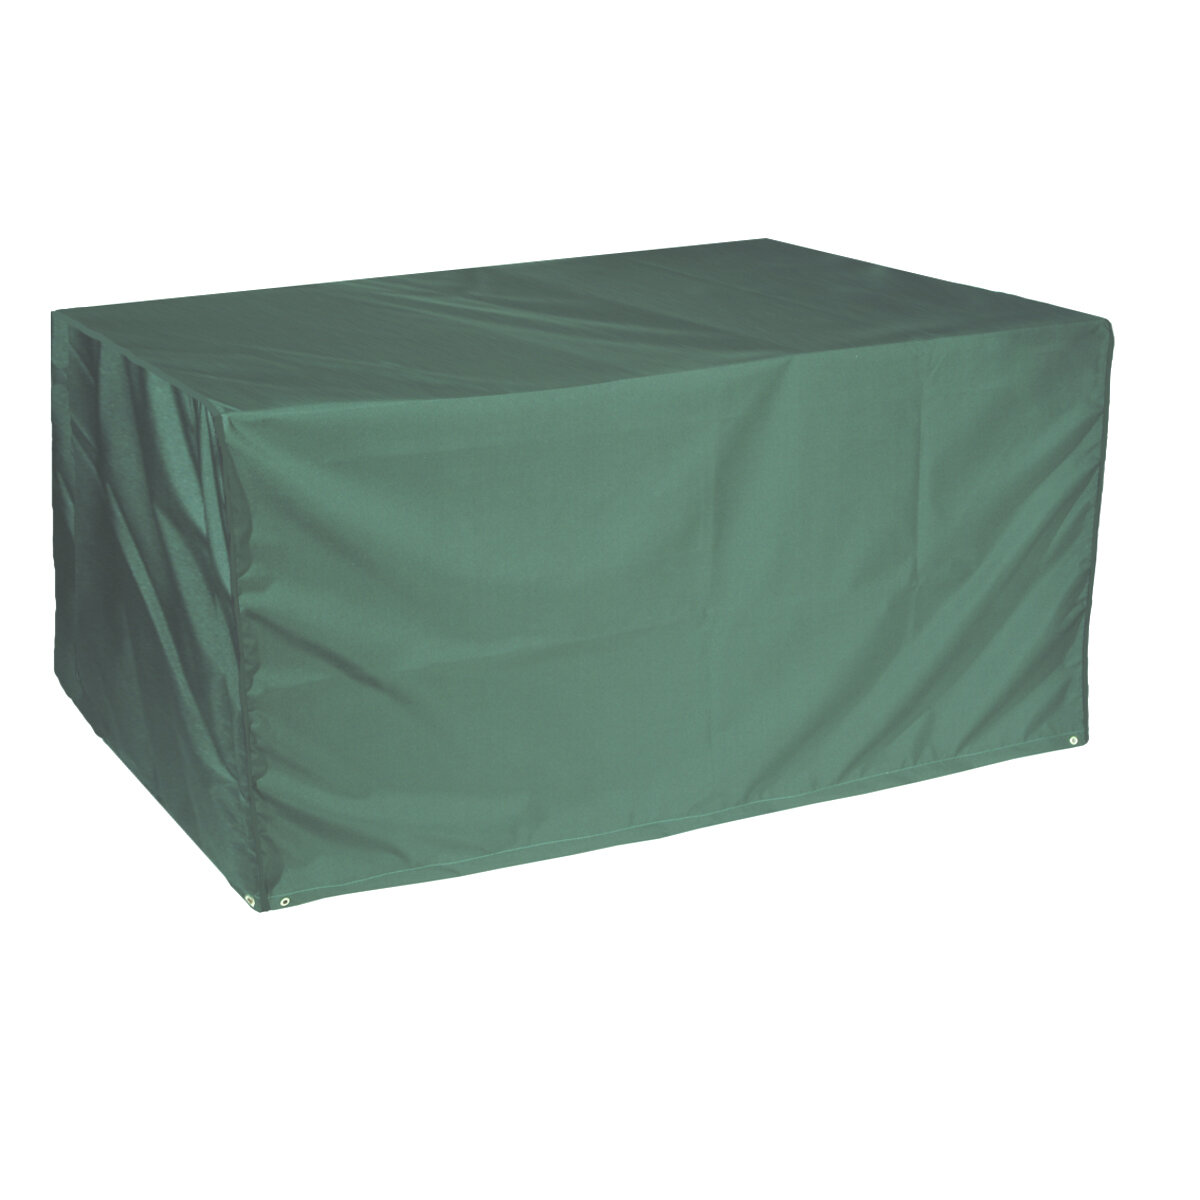 Arlmont Co Rectangular Water Resistant Patio Table Cover Reviews Wayfair